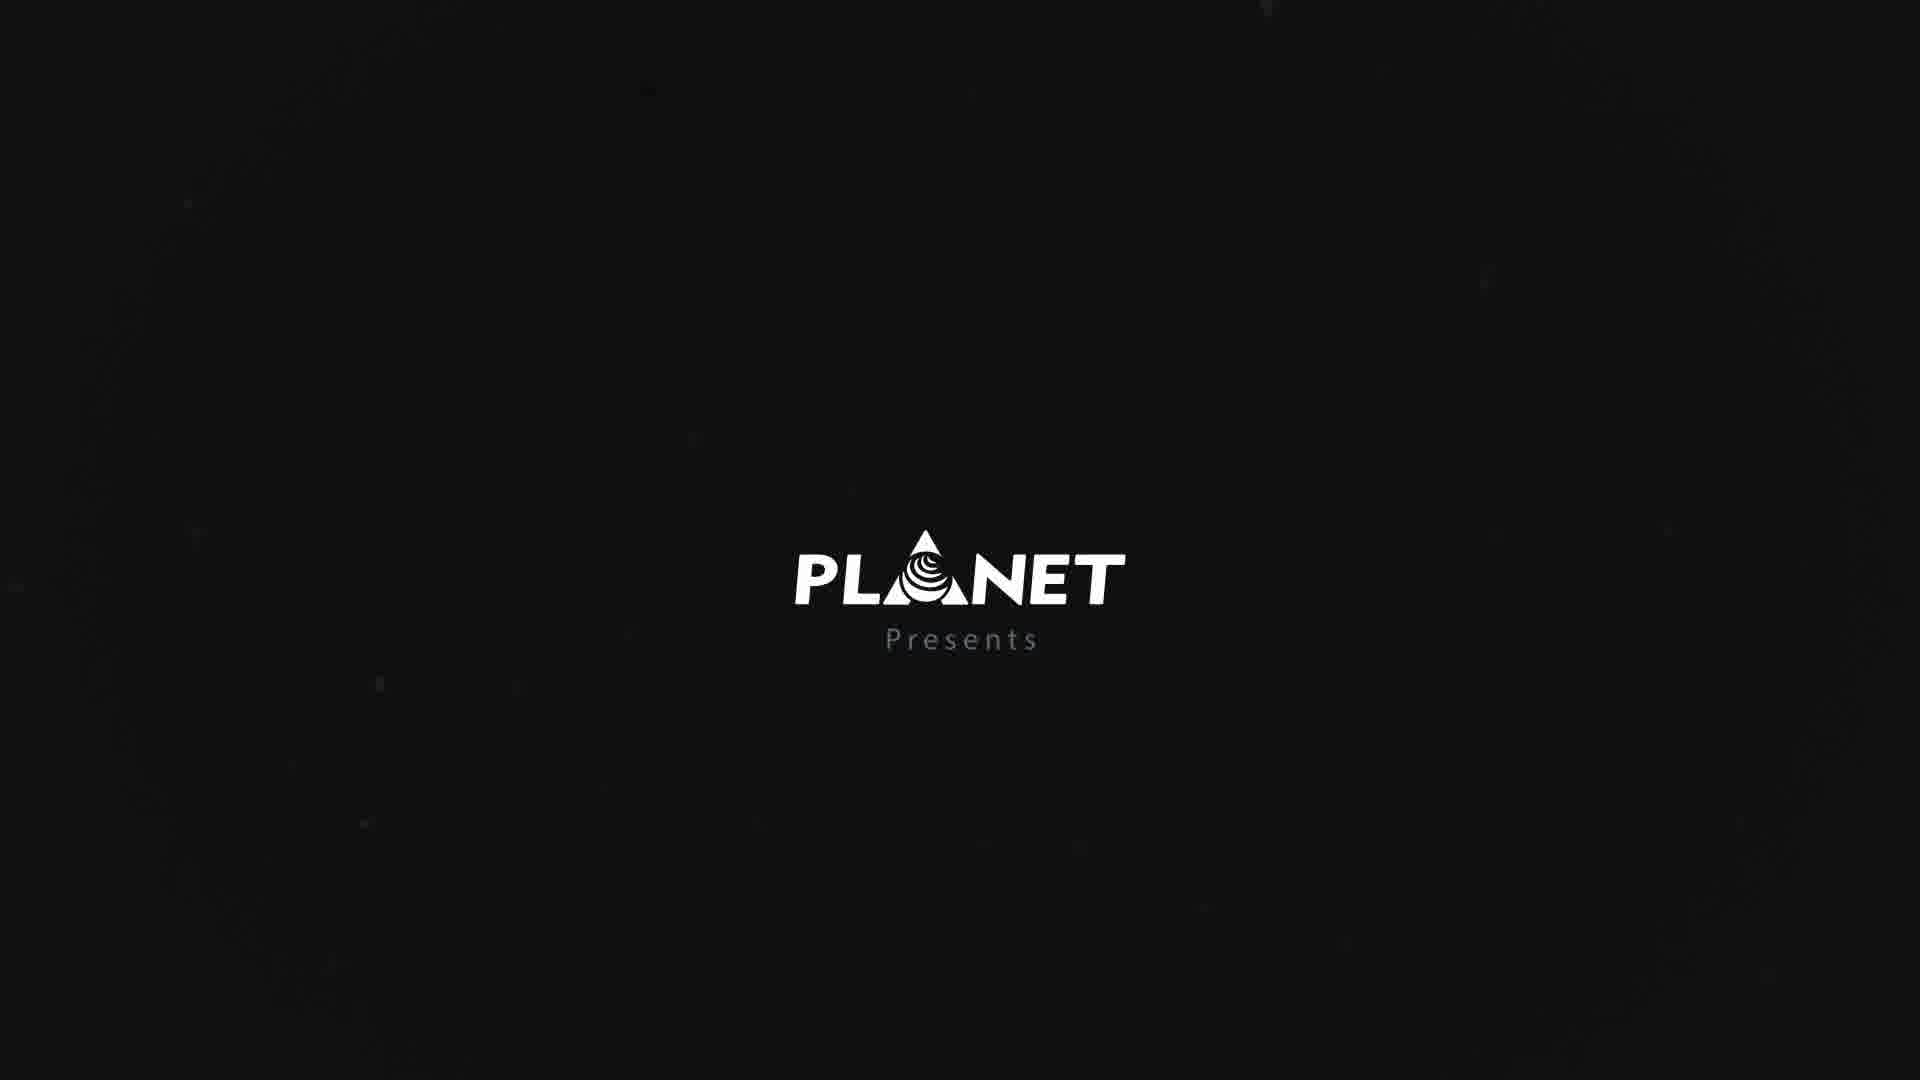 Planet Video Production